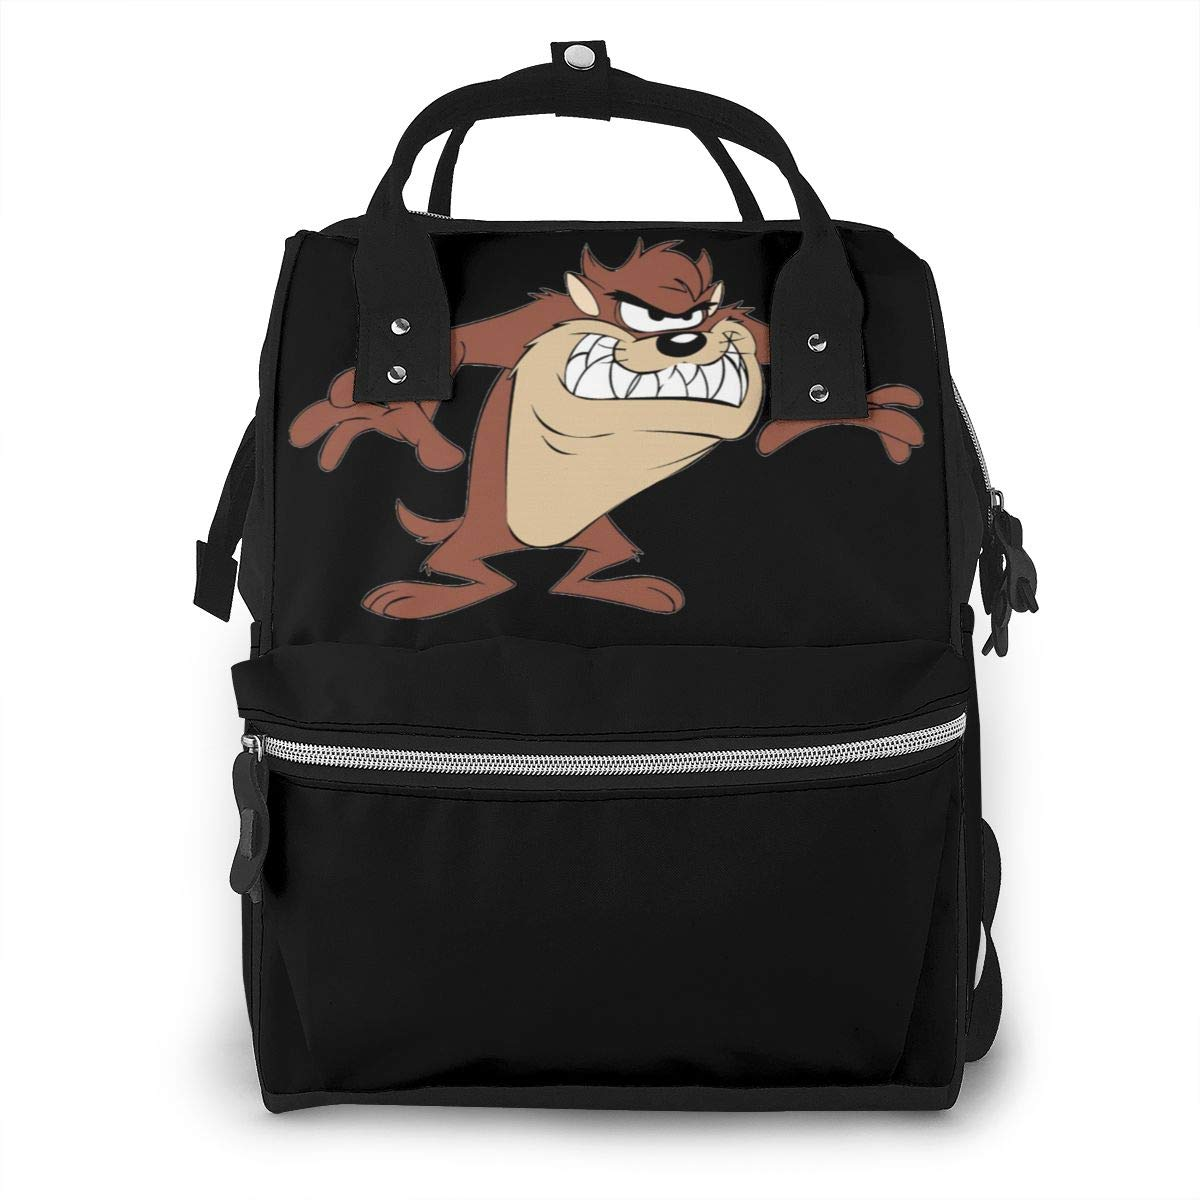 Tasmanian Devil Diaper Bag Multi-Function Waterproof Travel Backpack Nappy Bags for Baby Care Mummy Backpack